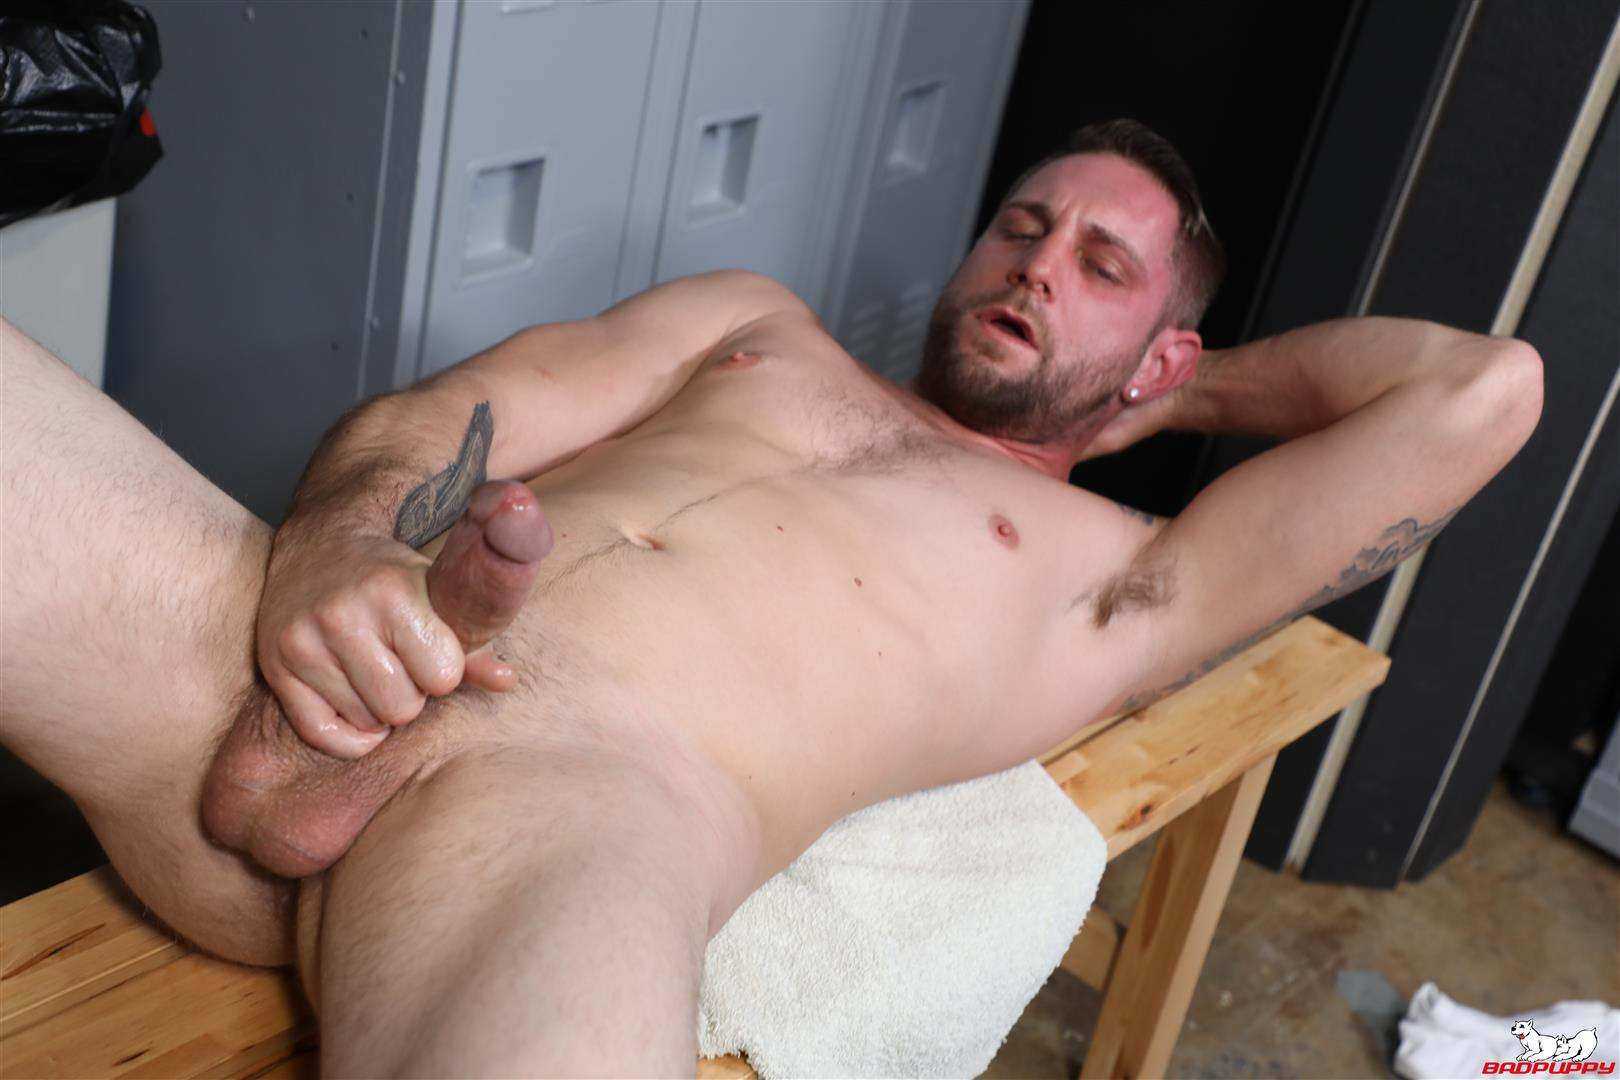 Badpuppy-Matt-Wingman-New-Yorker-With-A-Big-Cock-Jerking-Off-13 Sexy New Yorker Jerks Off His Big Cut Cock In The Locker Room